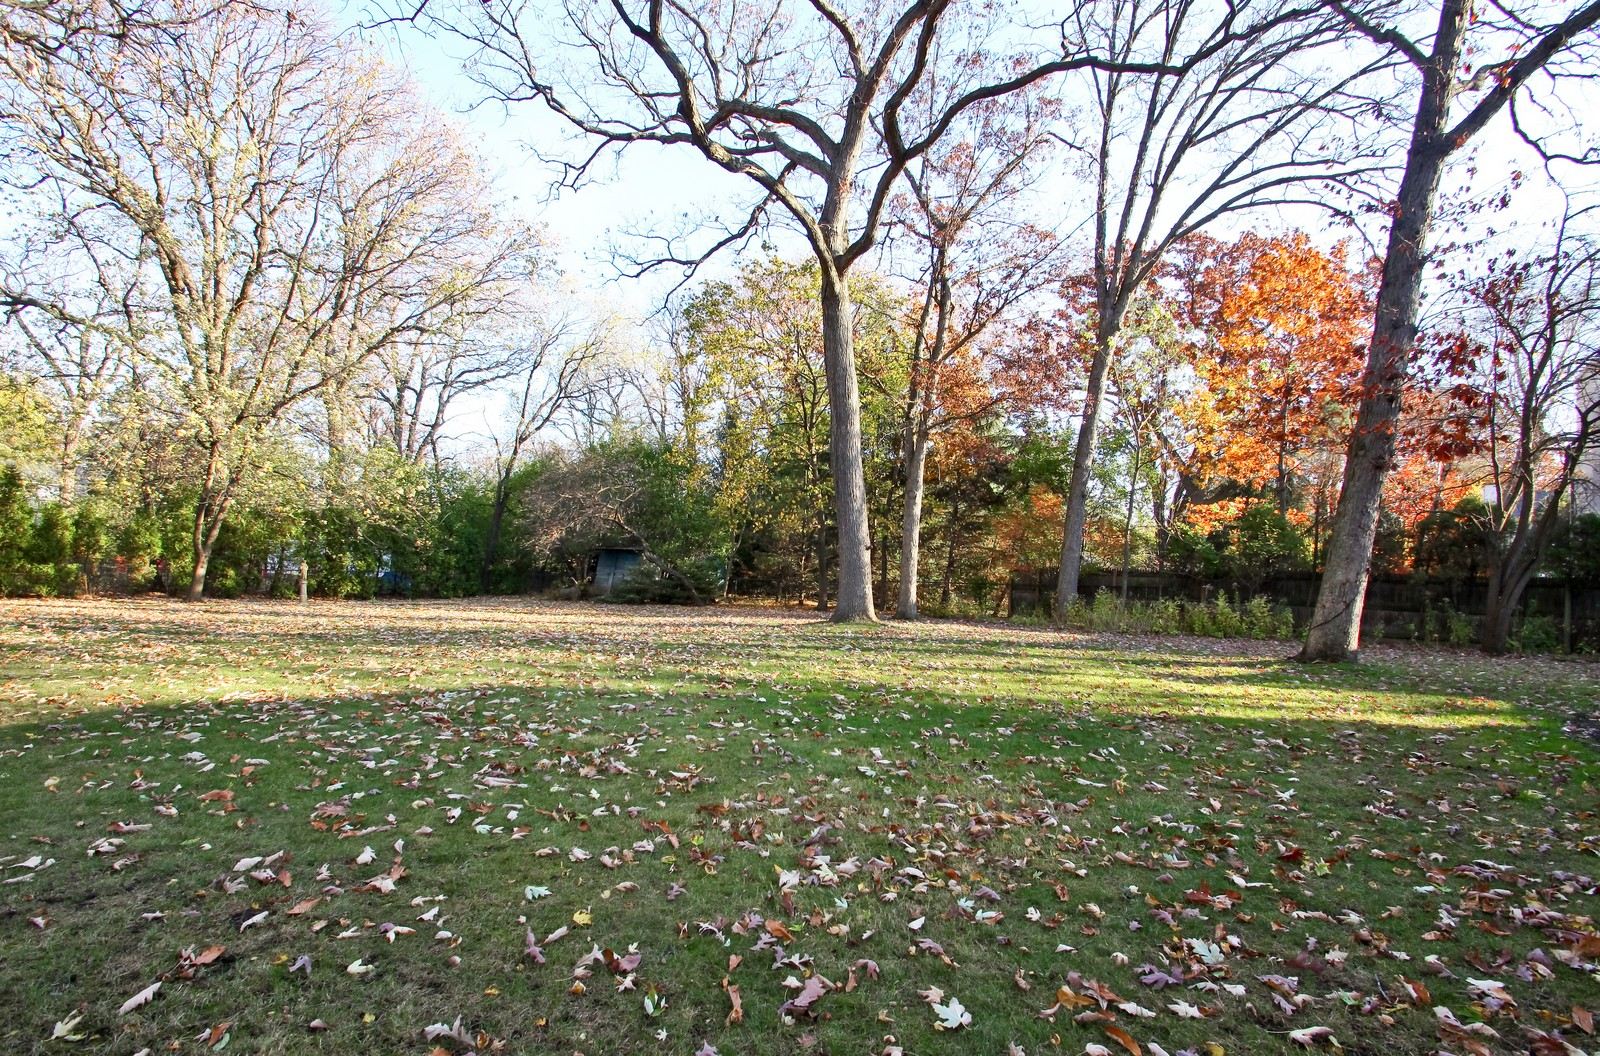 Real Estate Photography - 231 Woodlawn Ave, Winnetka, IL, 60093 - 231 Woodlawn Ave, Glencoe view of yard from Small